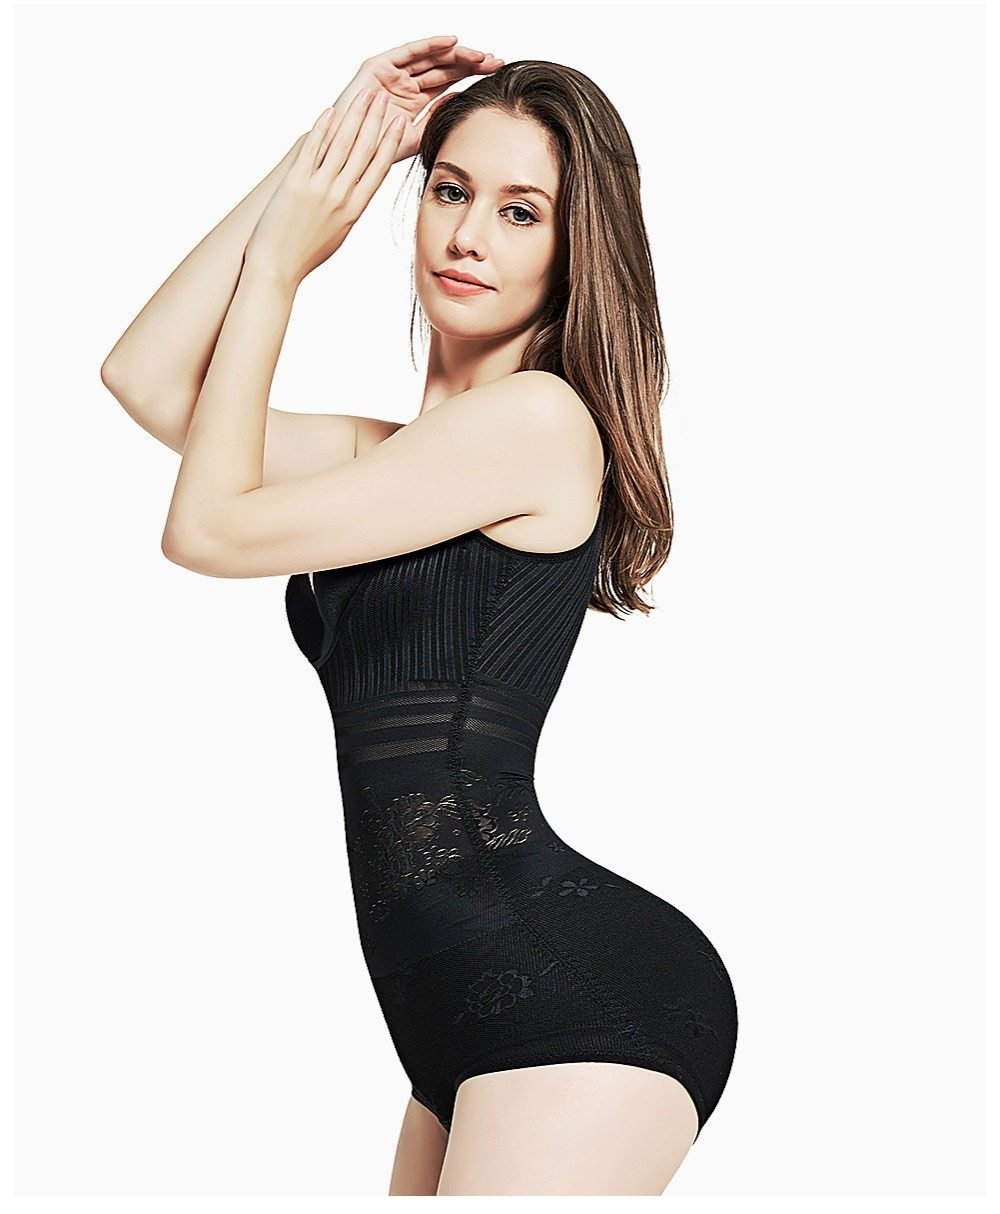 Shapewear Waist Trainer: Slimming Underwear Body Shaper